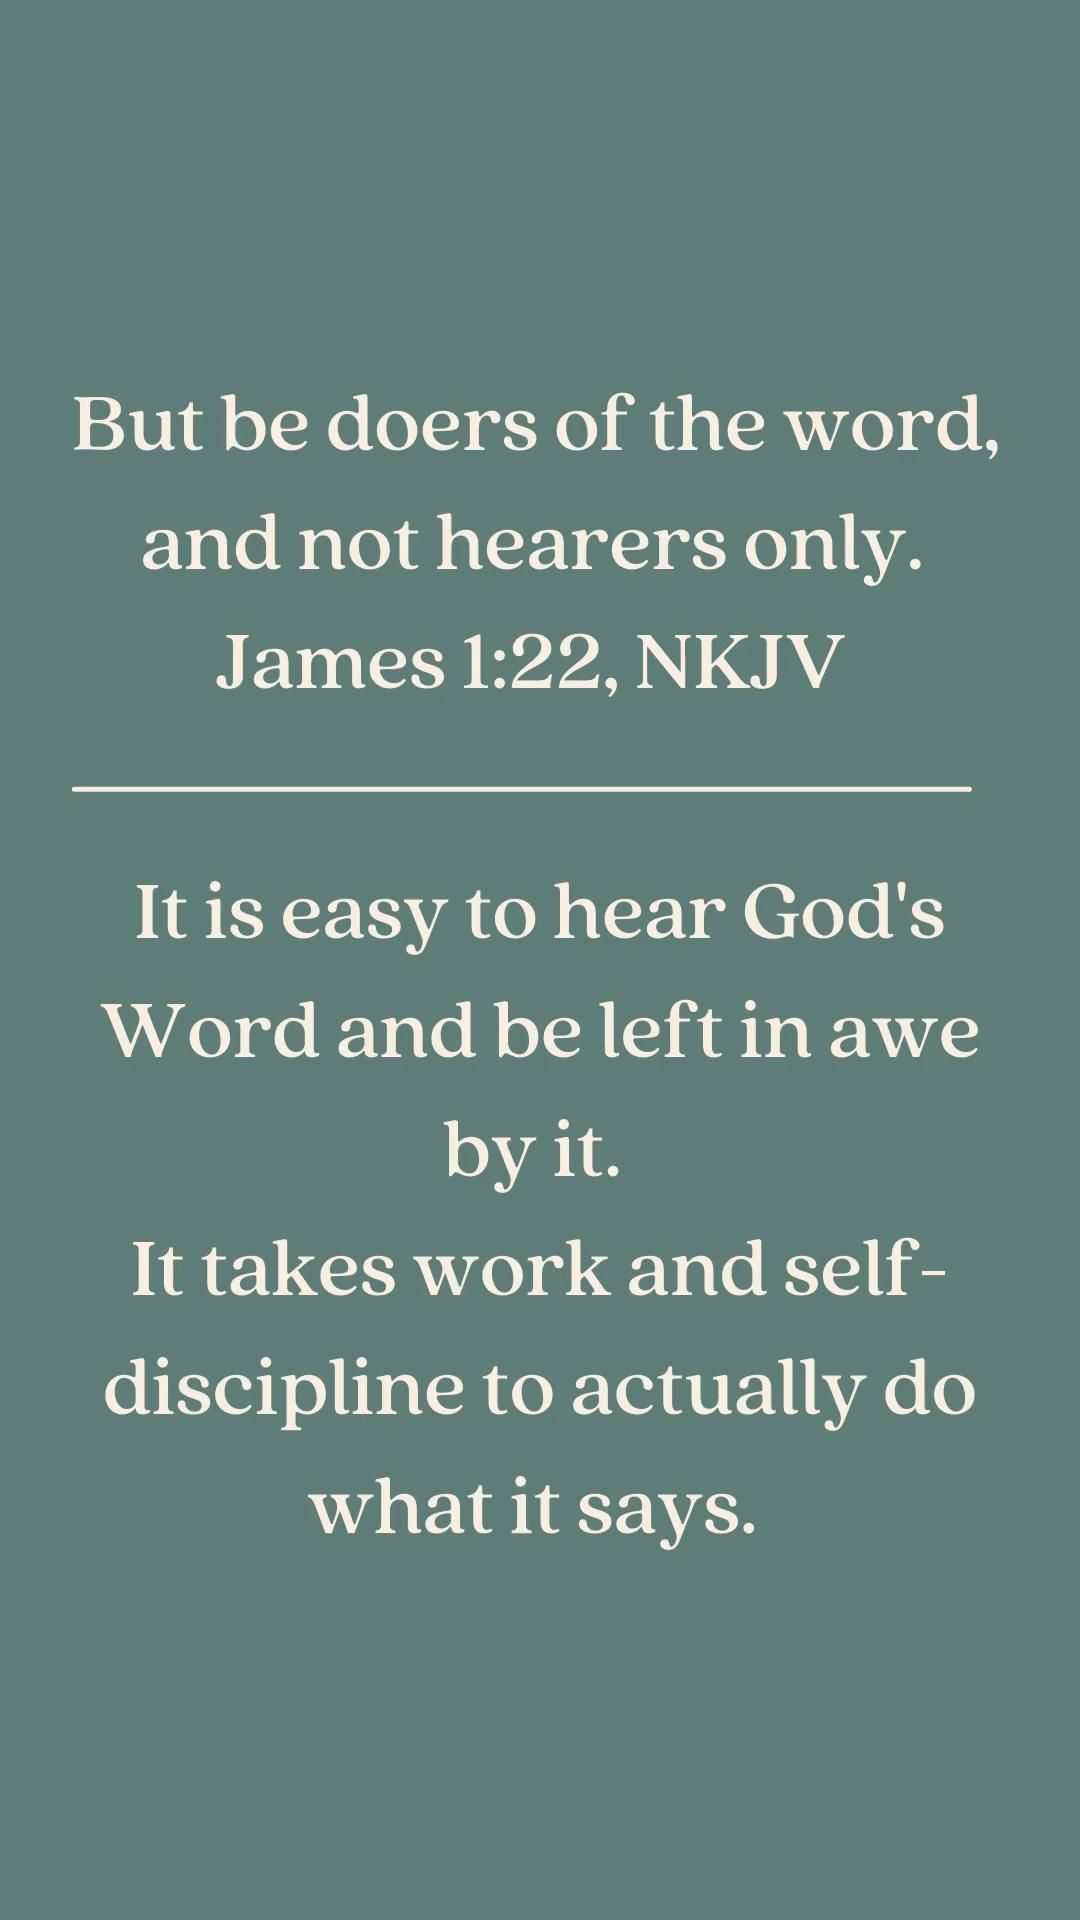 Bible verses for motivation | Bible verses for strength | Bible quotes | gods timing is perfect |